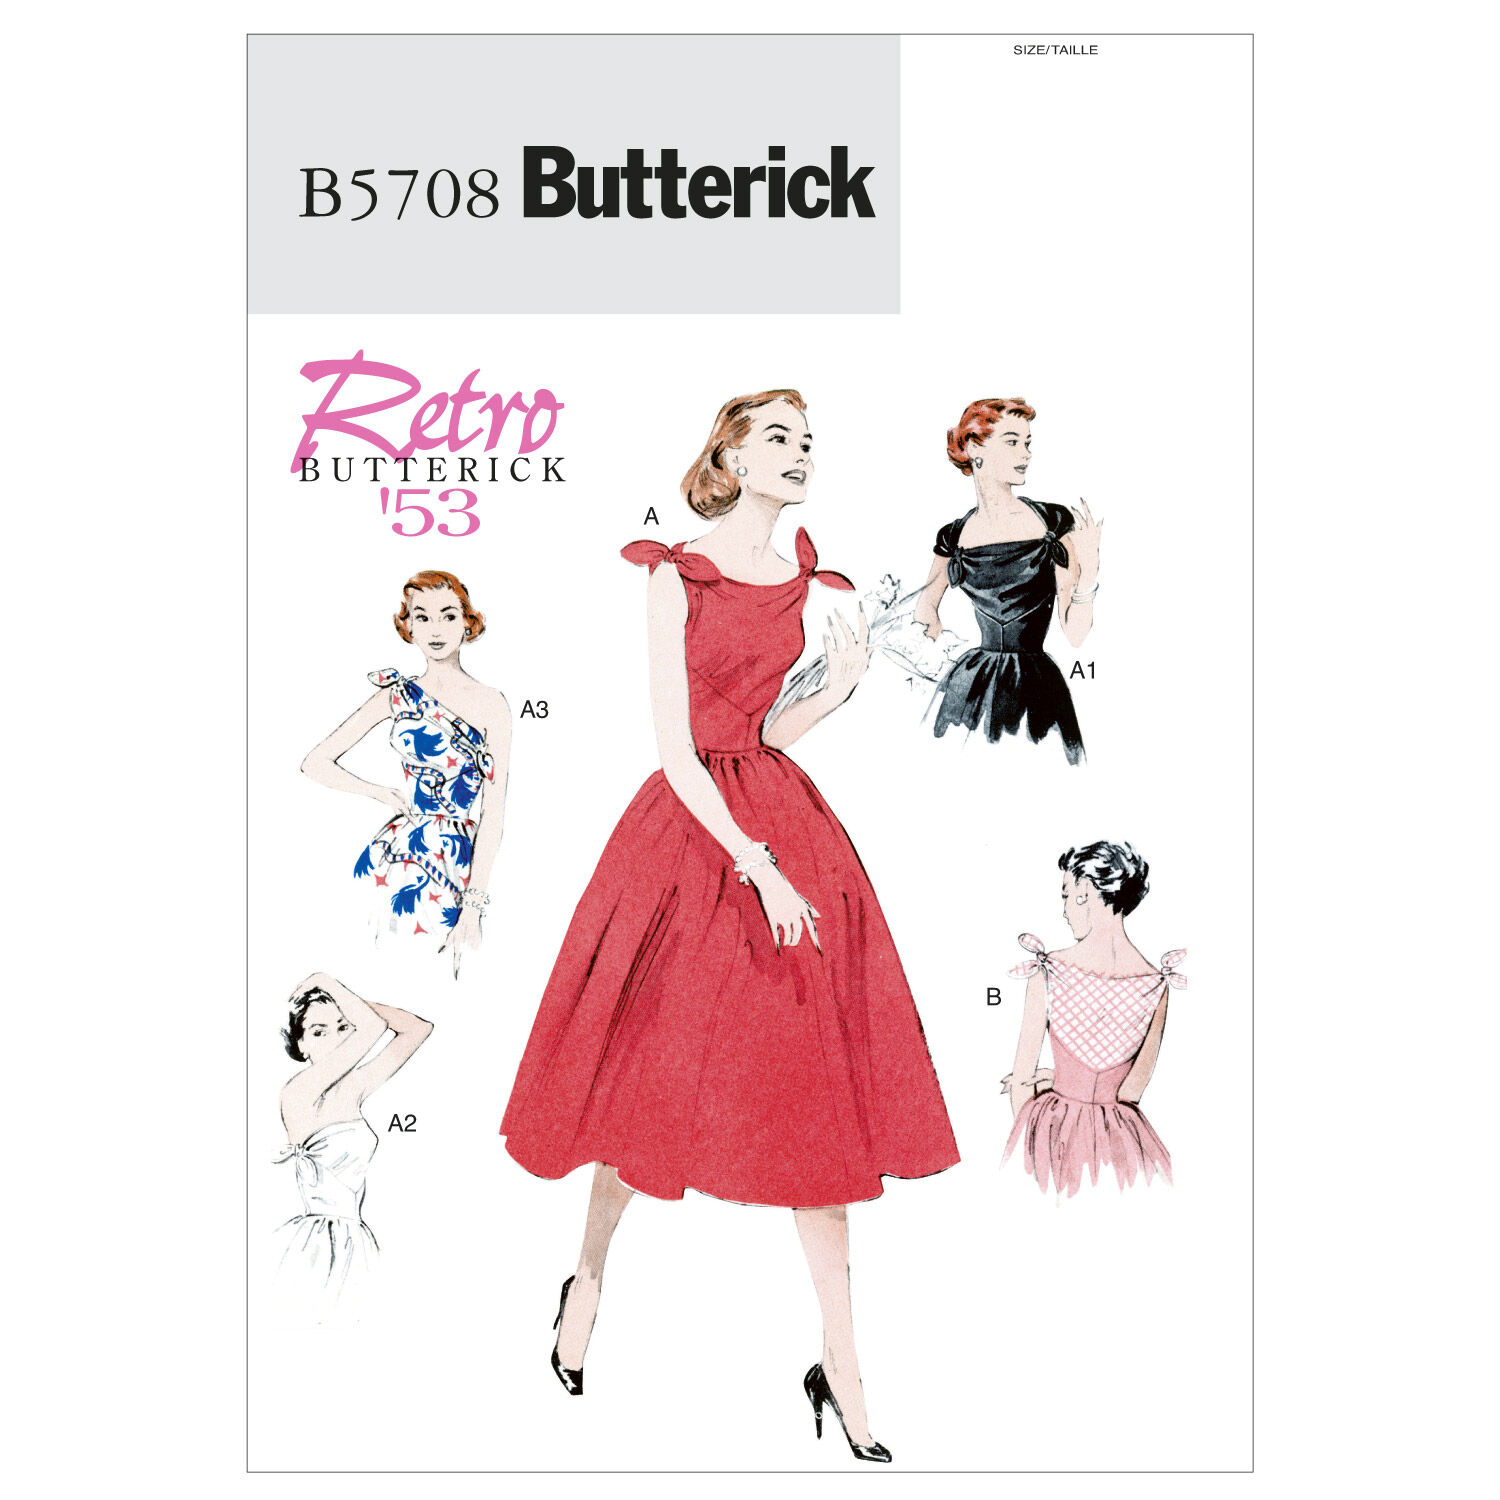 1950s Sewing Patterns | Dresses, Skirts, Tops, Mens 1953 Butterick Misses Dress - B5708 $11.97 AT vintagedancer.com